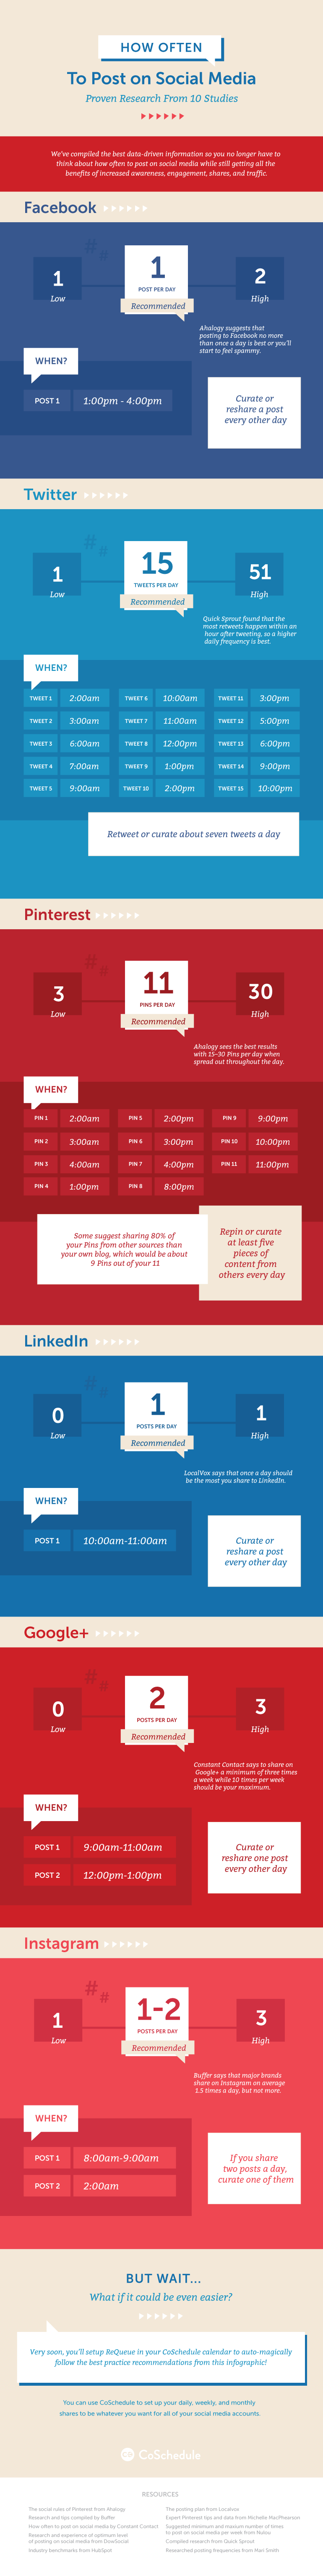 How Often To Post on Social Media #infographic